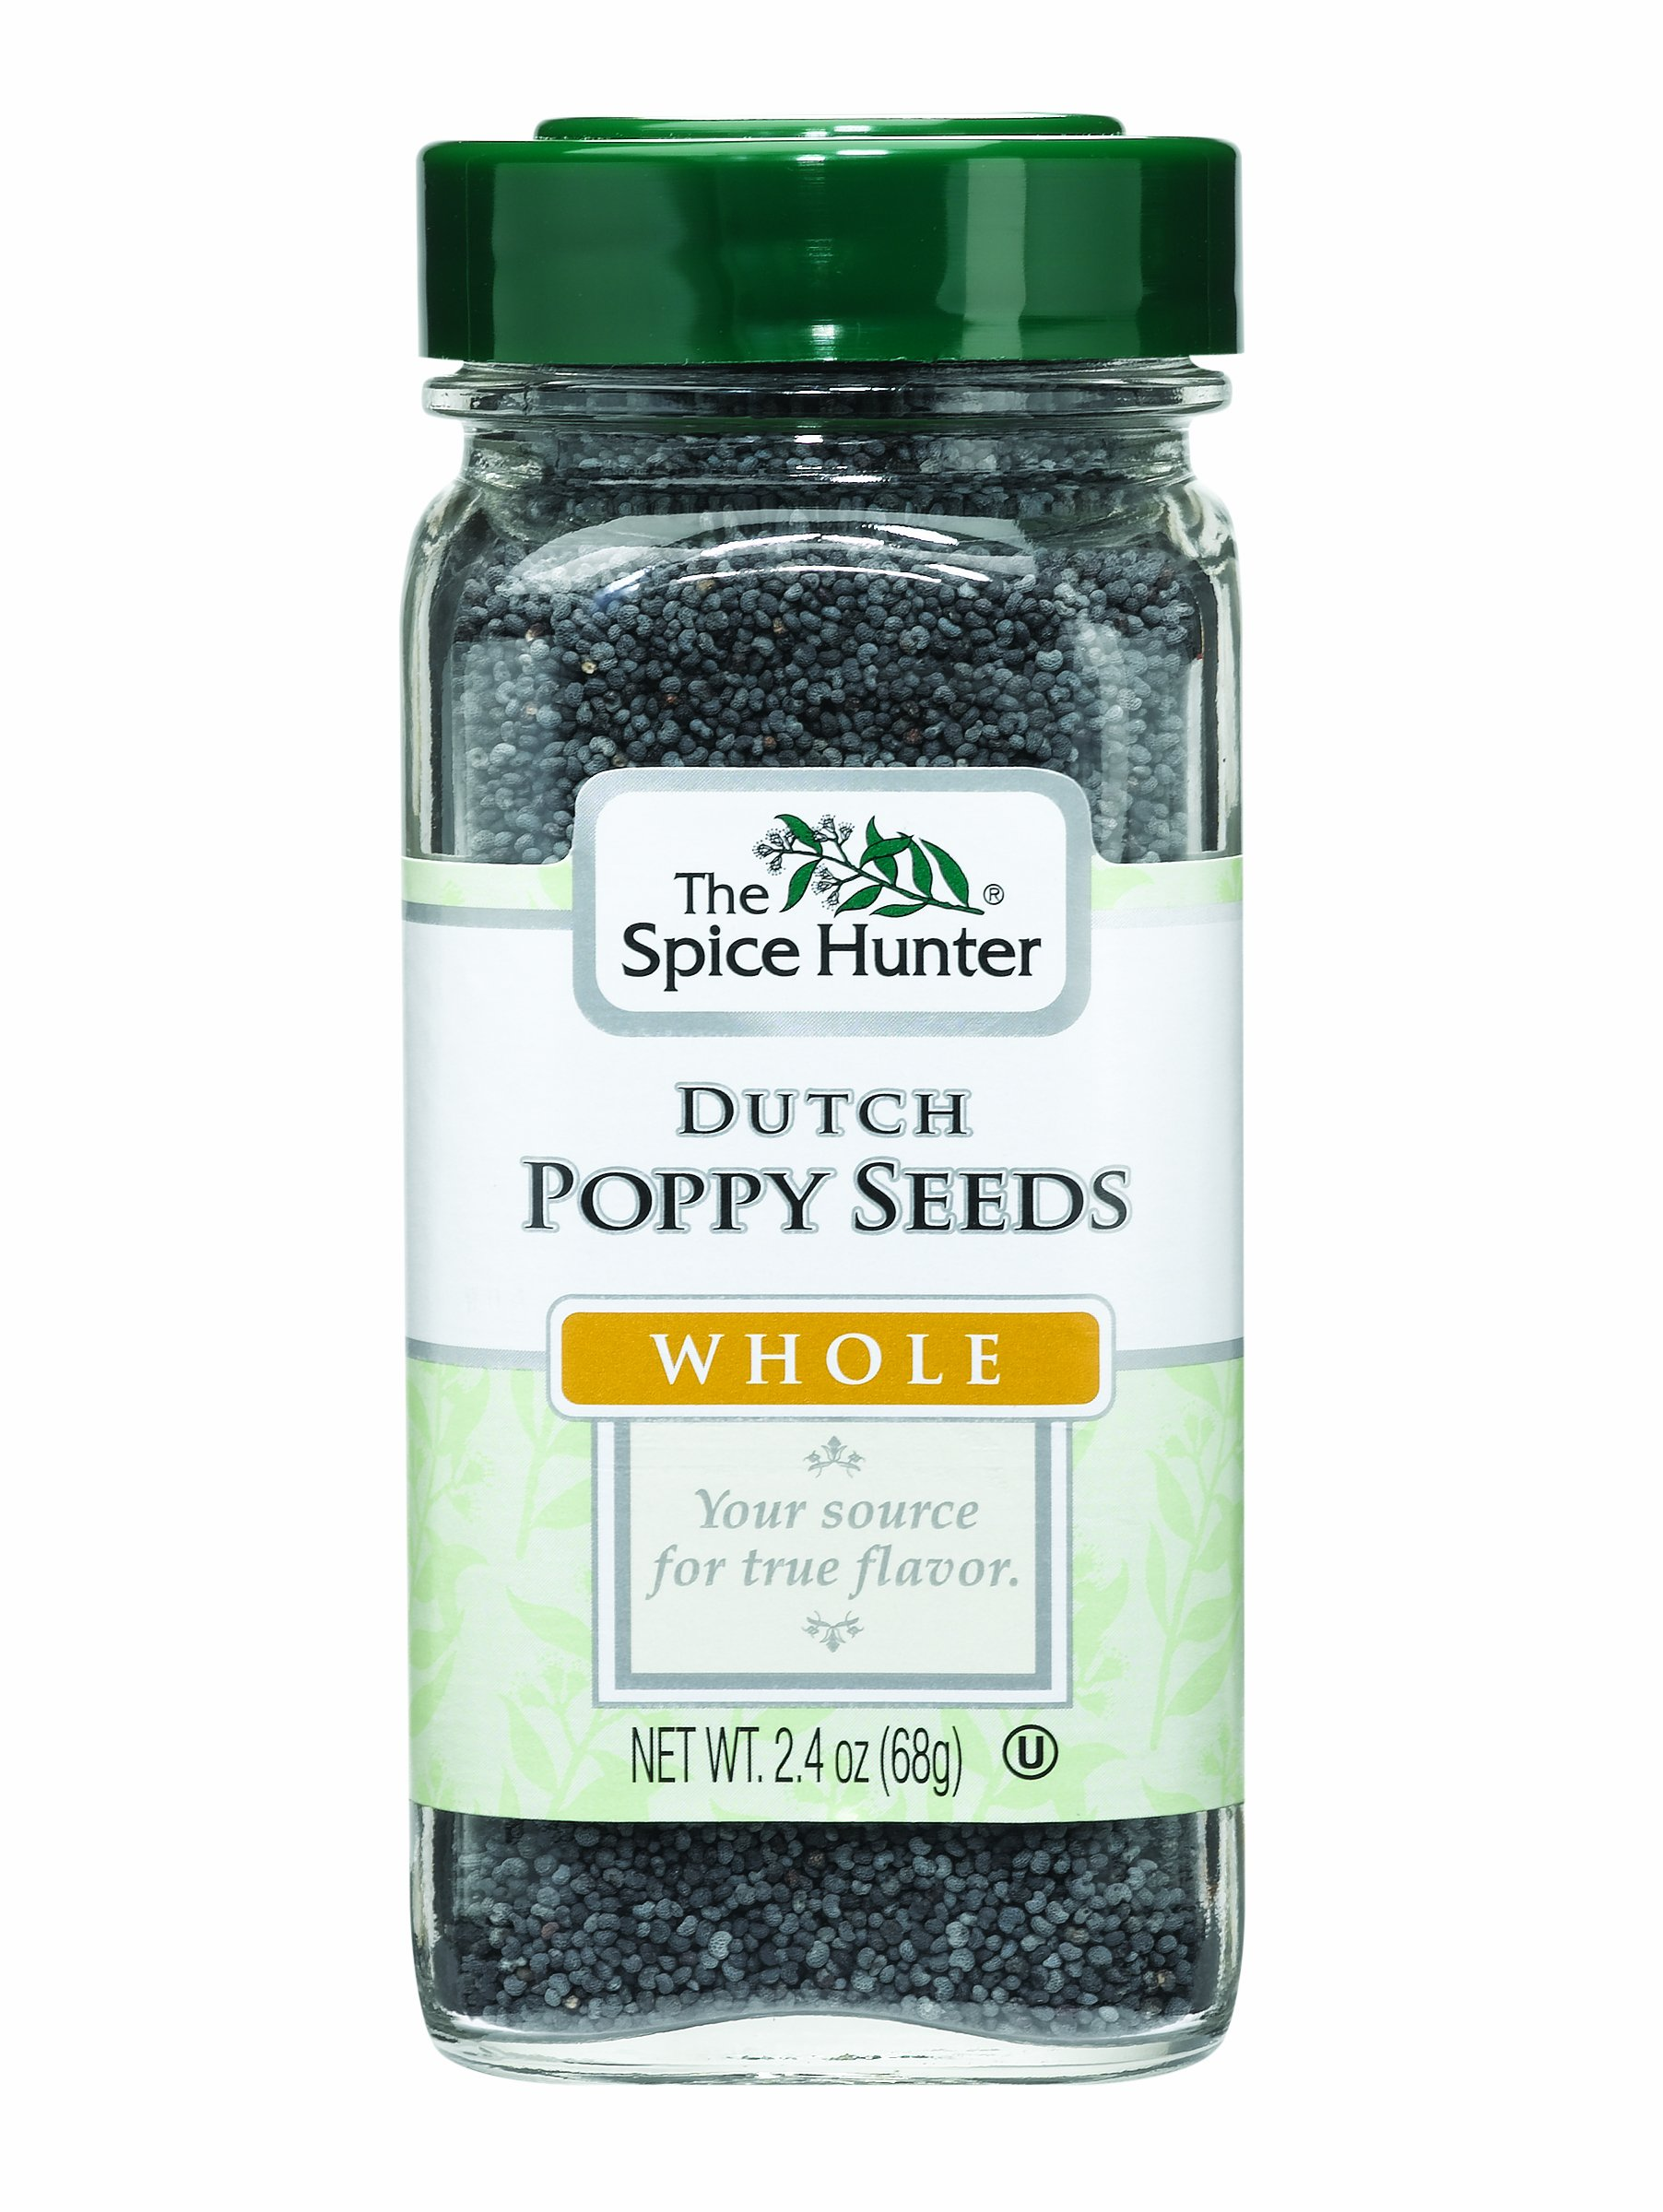 The Spice Hunter Poppy Seeds, Dutch, Whole, 2.4-Ounce Jars (Pack of 6) by Spice Hunter (Image #1)